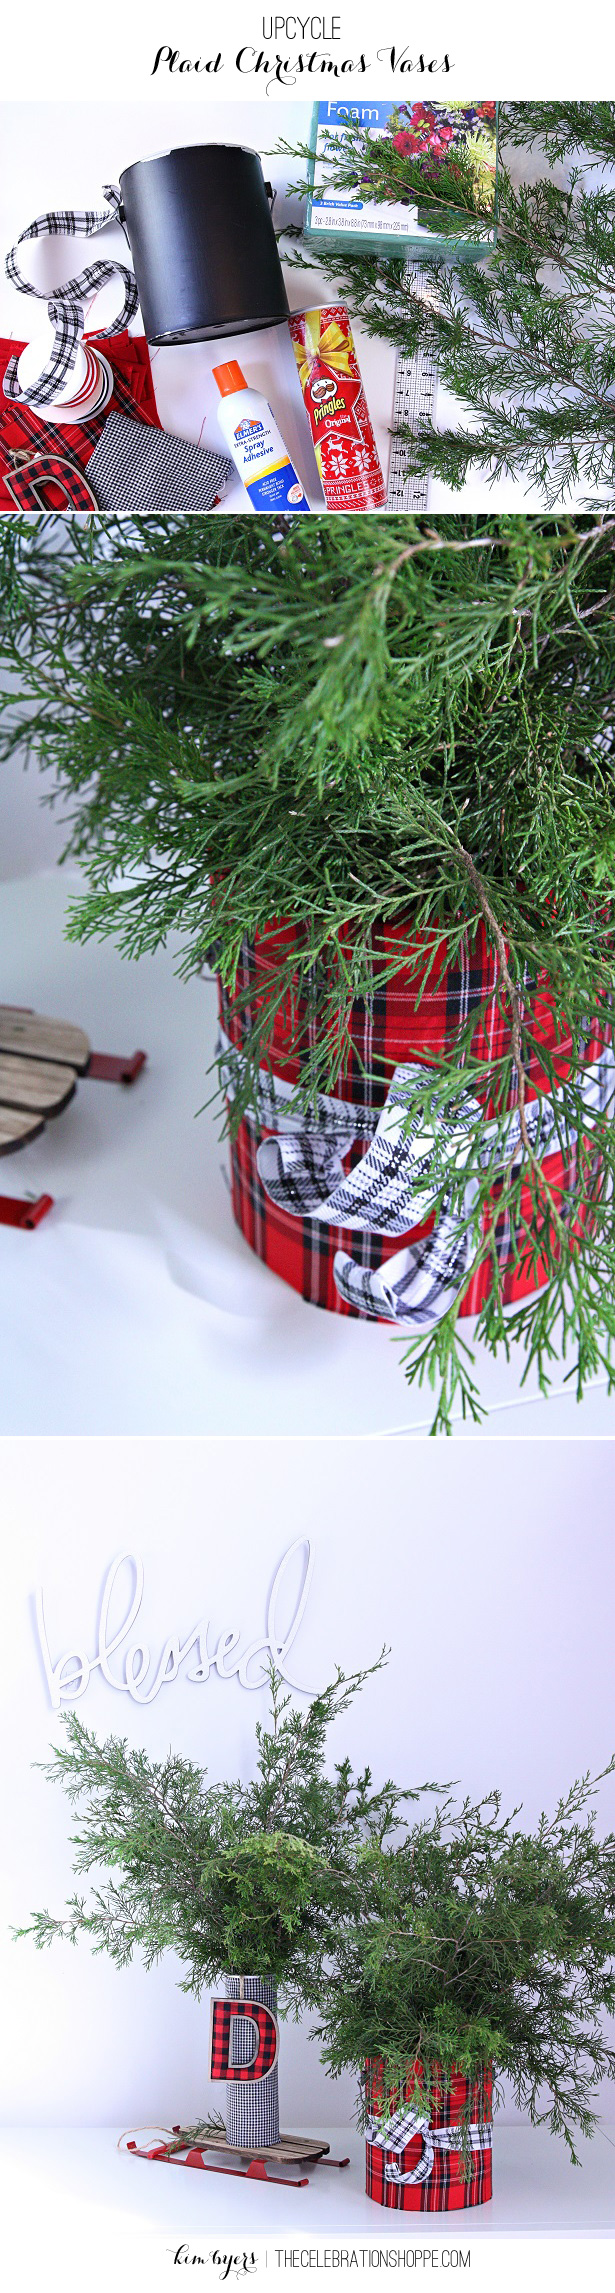 Upcycling Ideas for Christmas   Kim Byers